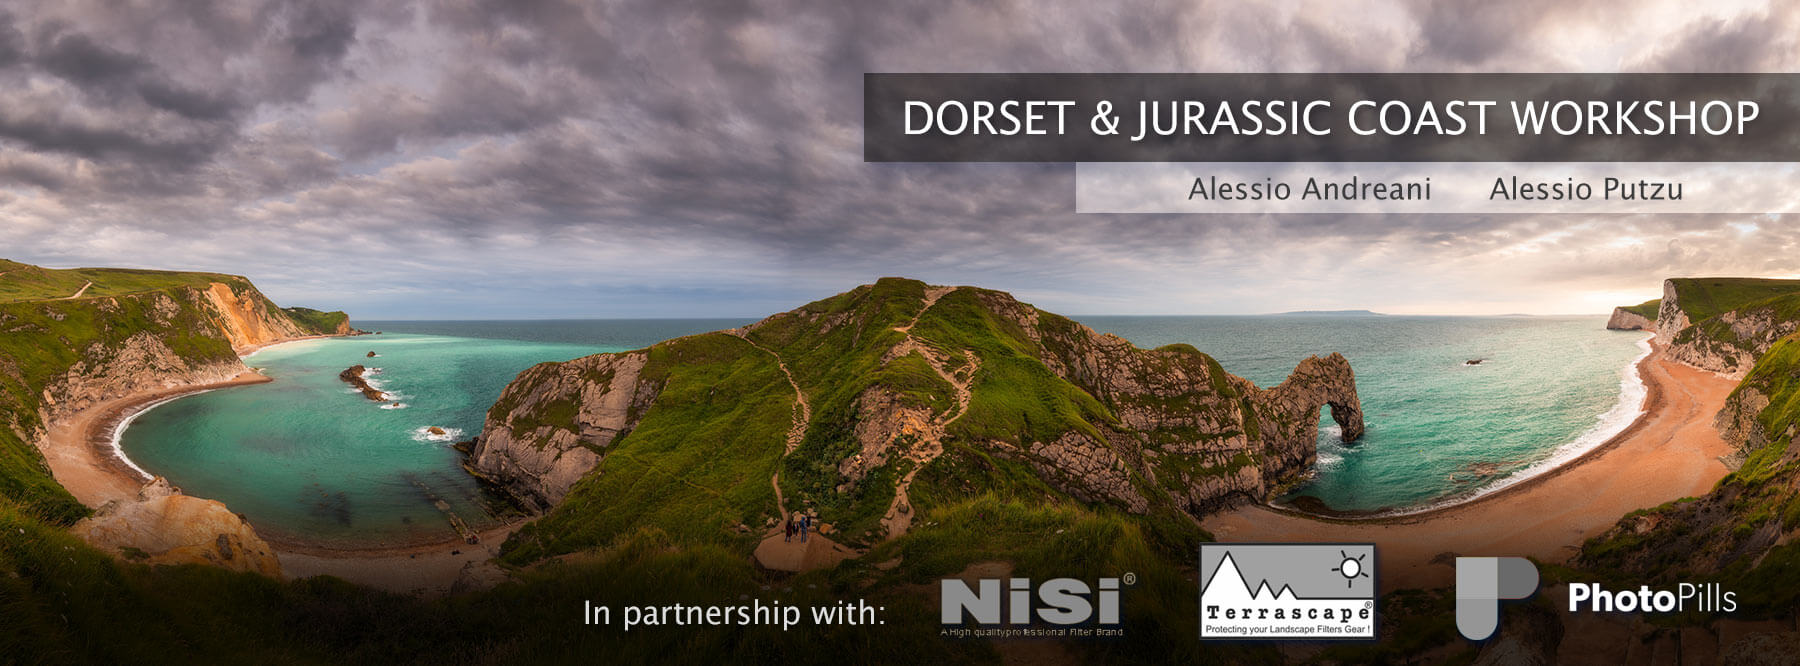 Jurassic Coast Photo Workshop Header